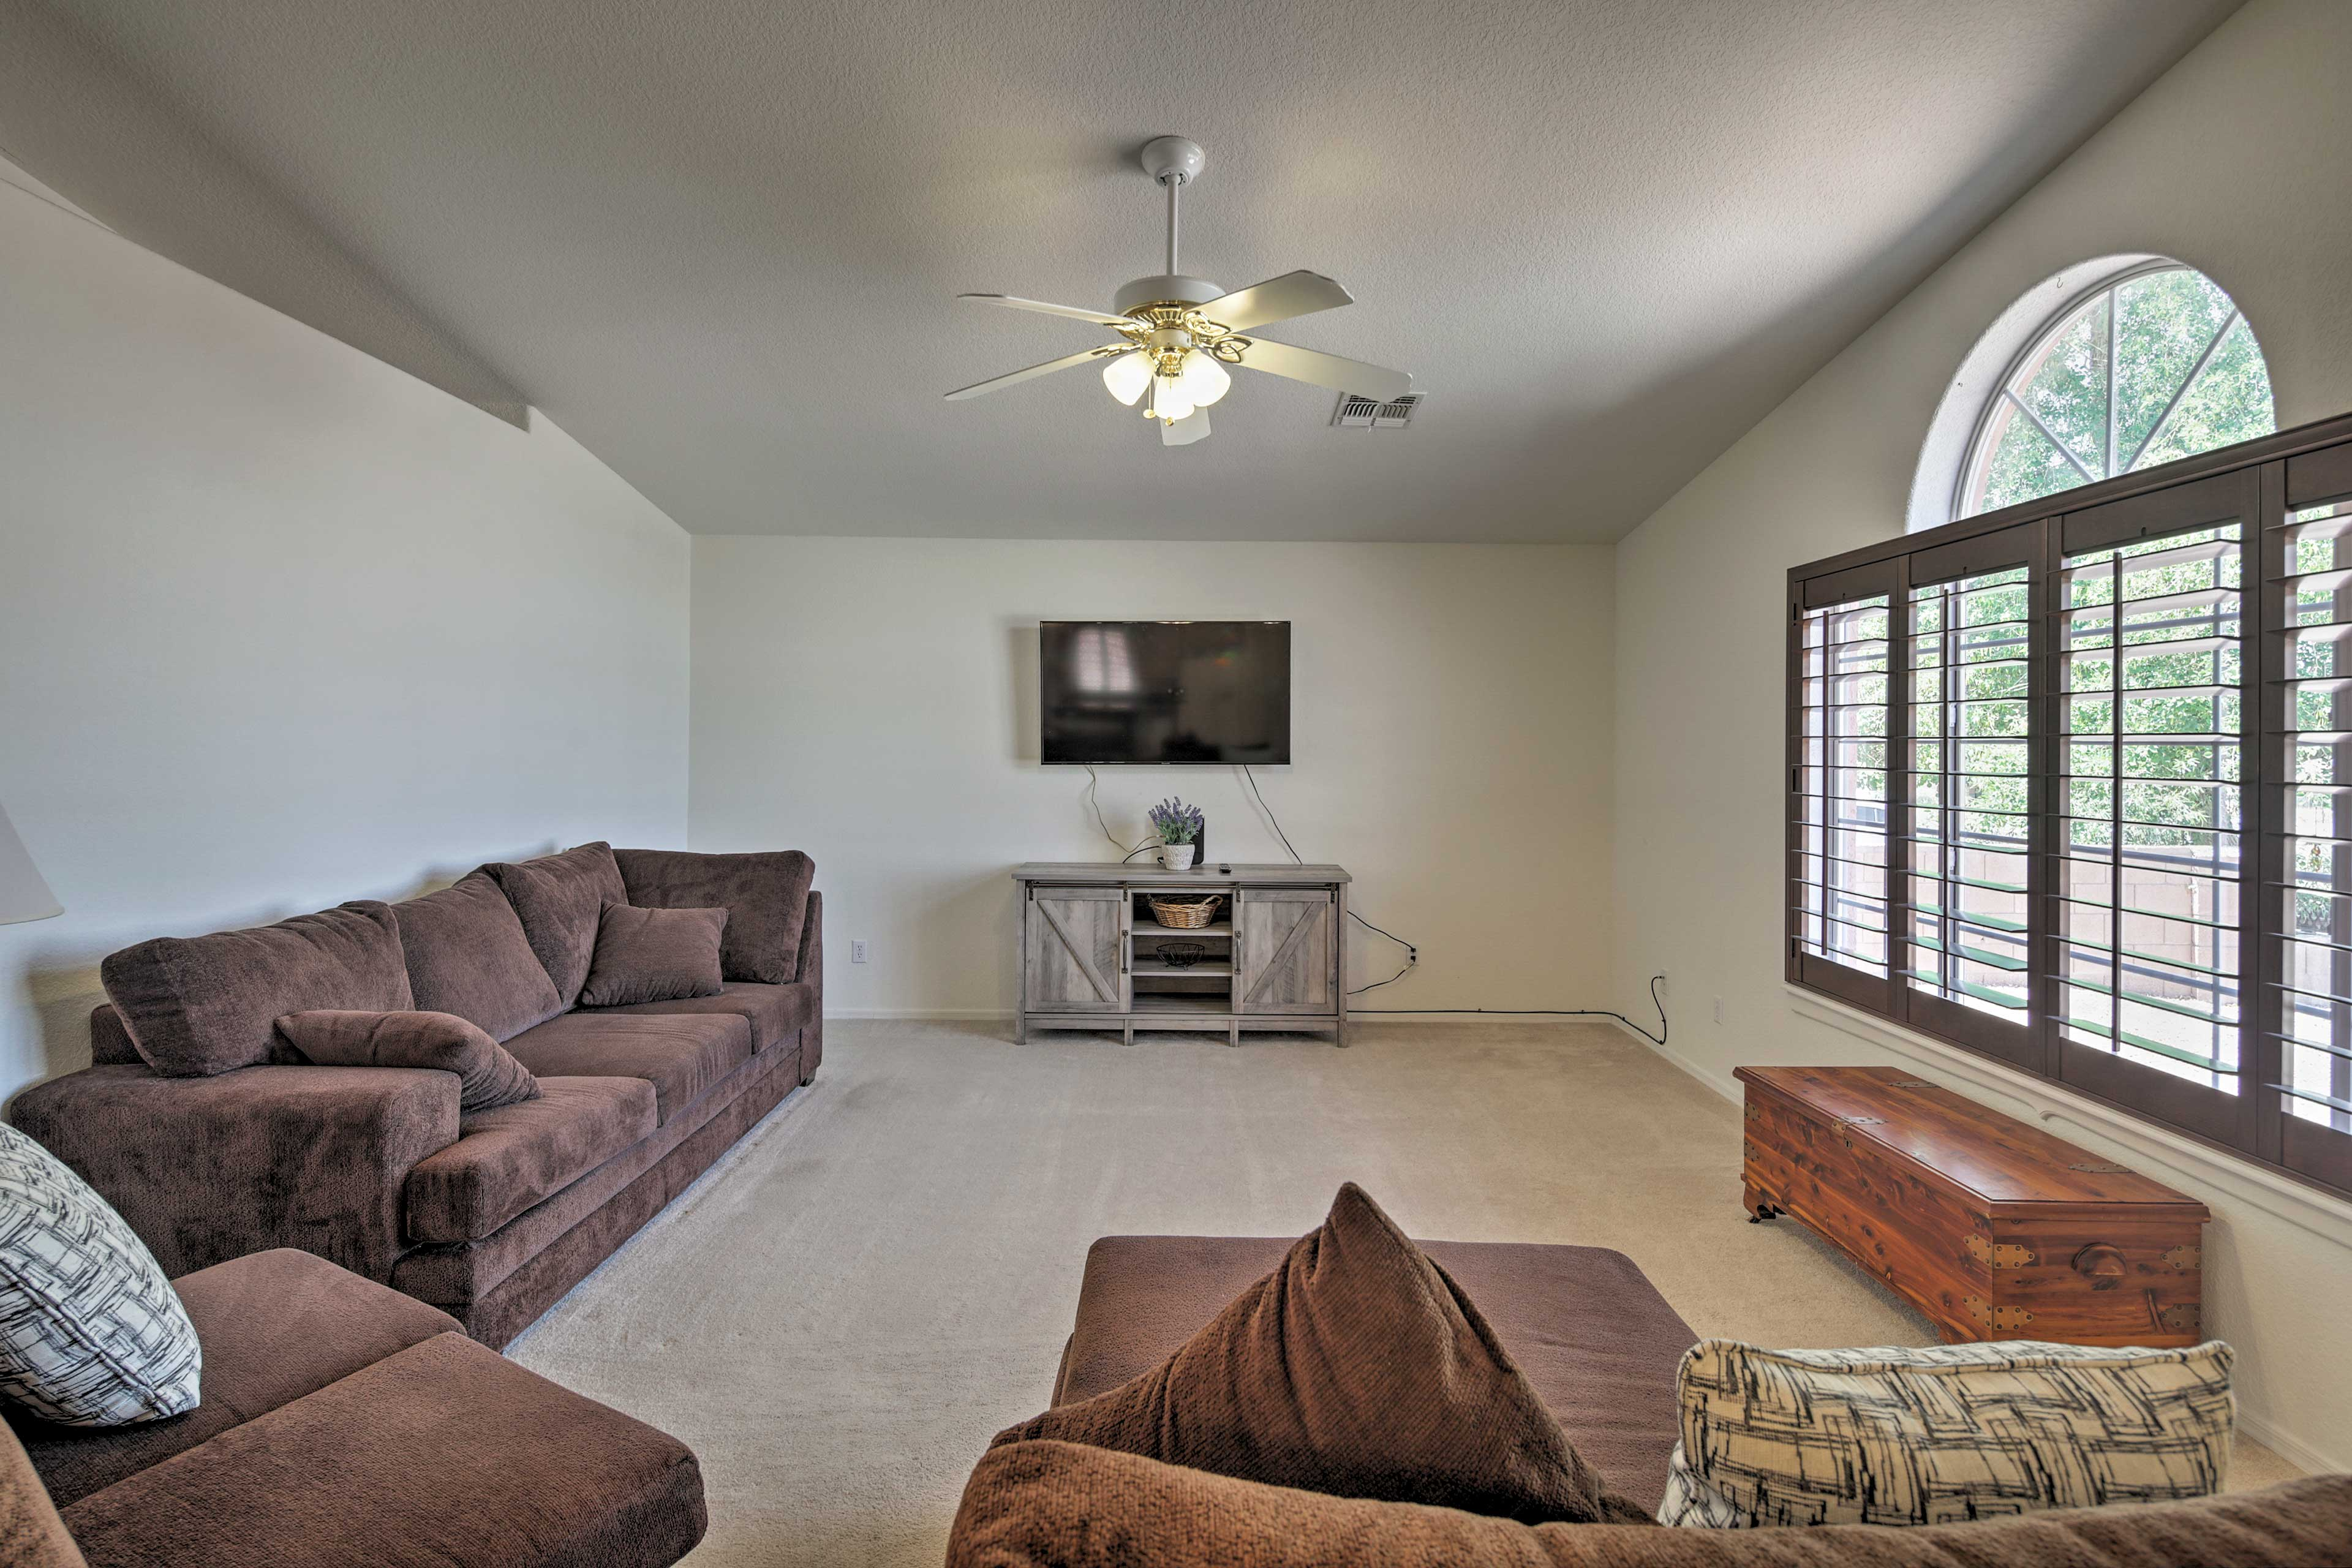 With beds for 5 and space for 7, this home is perfect for families.